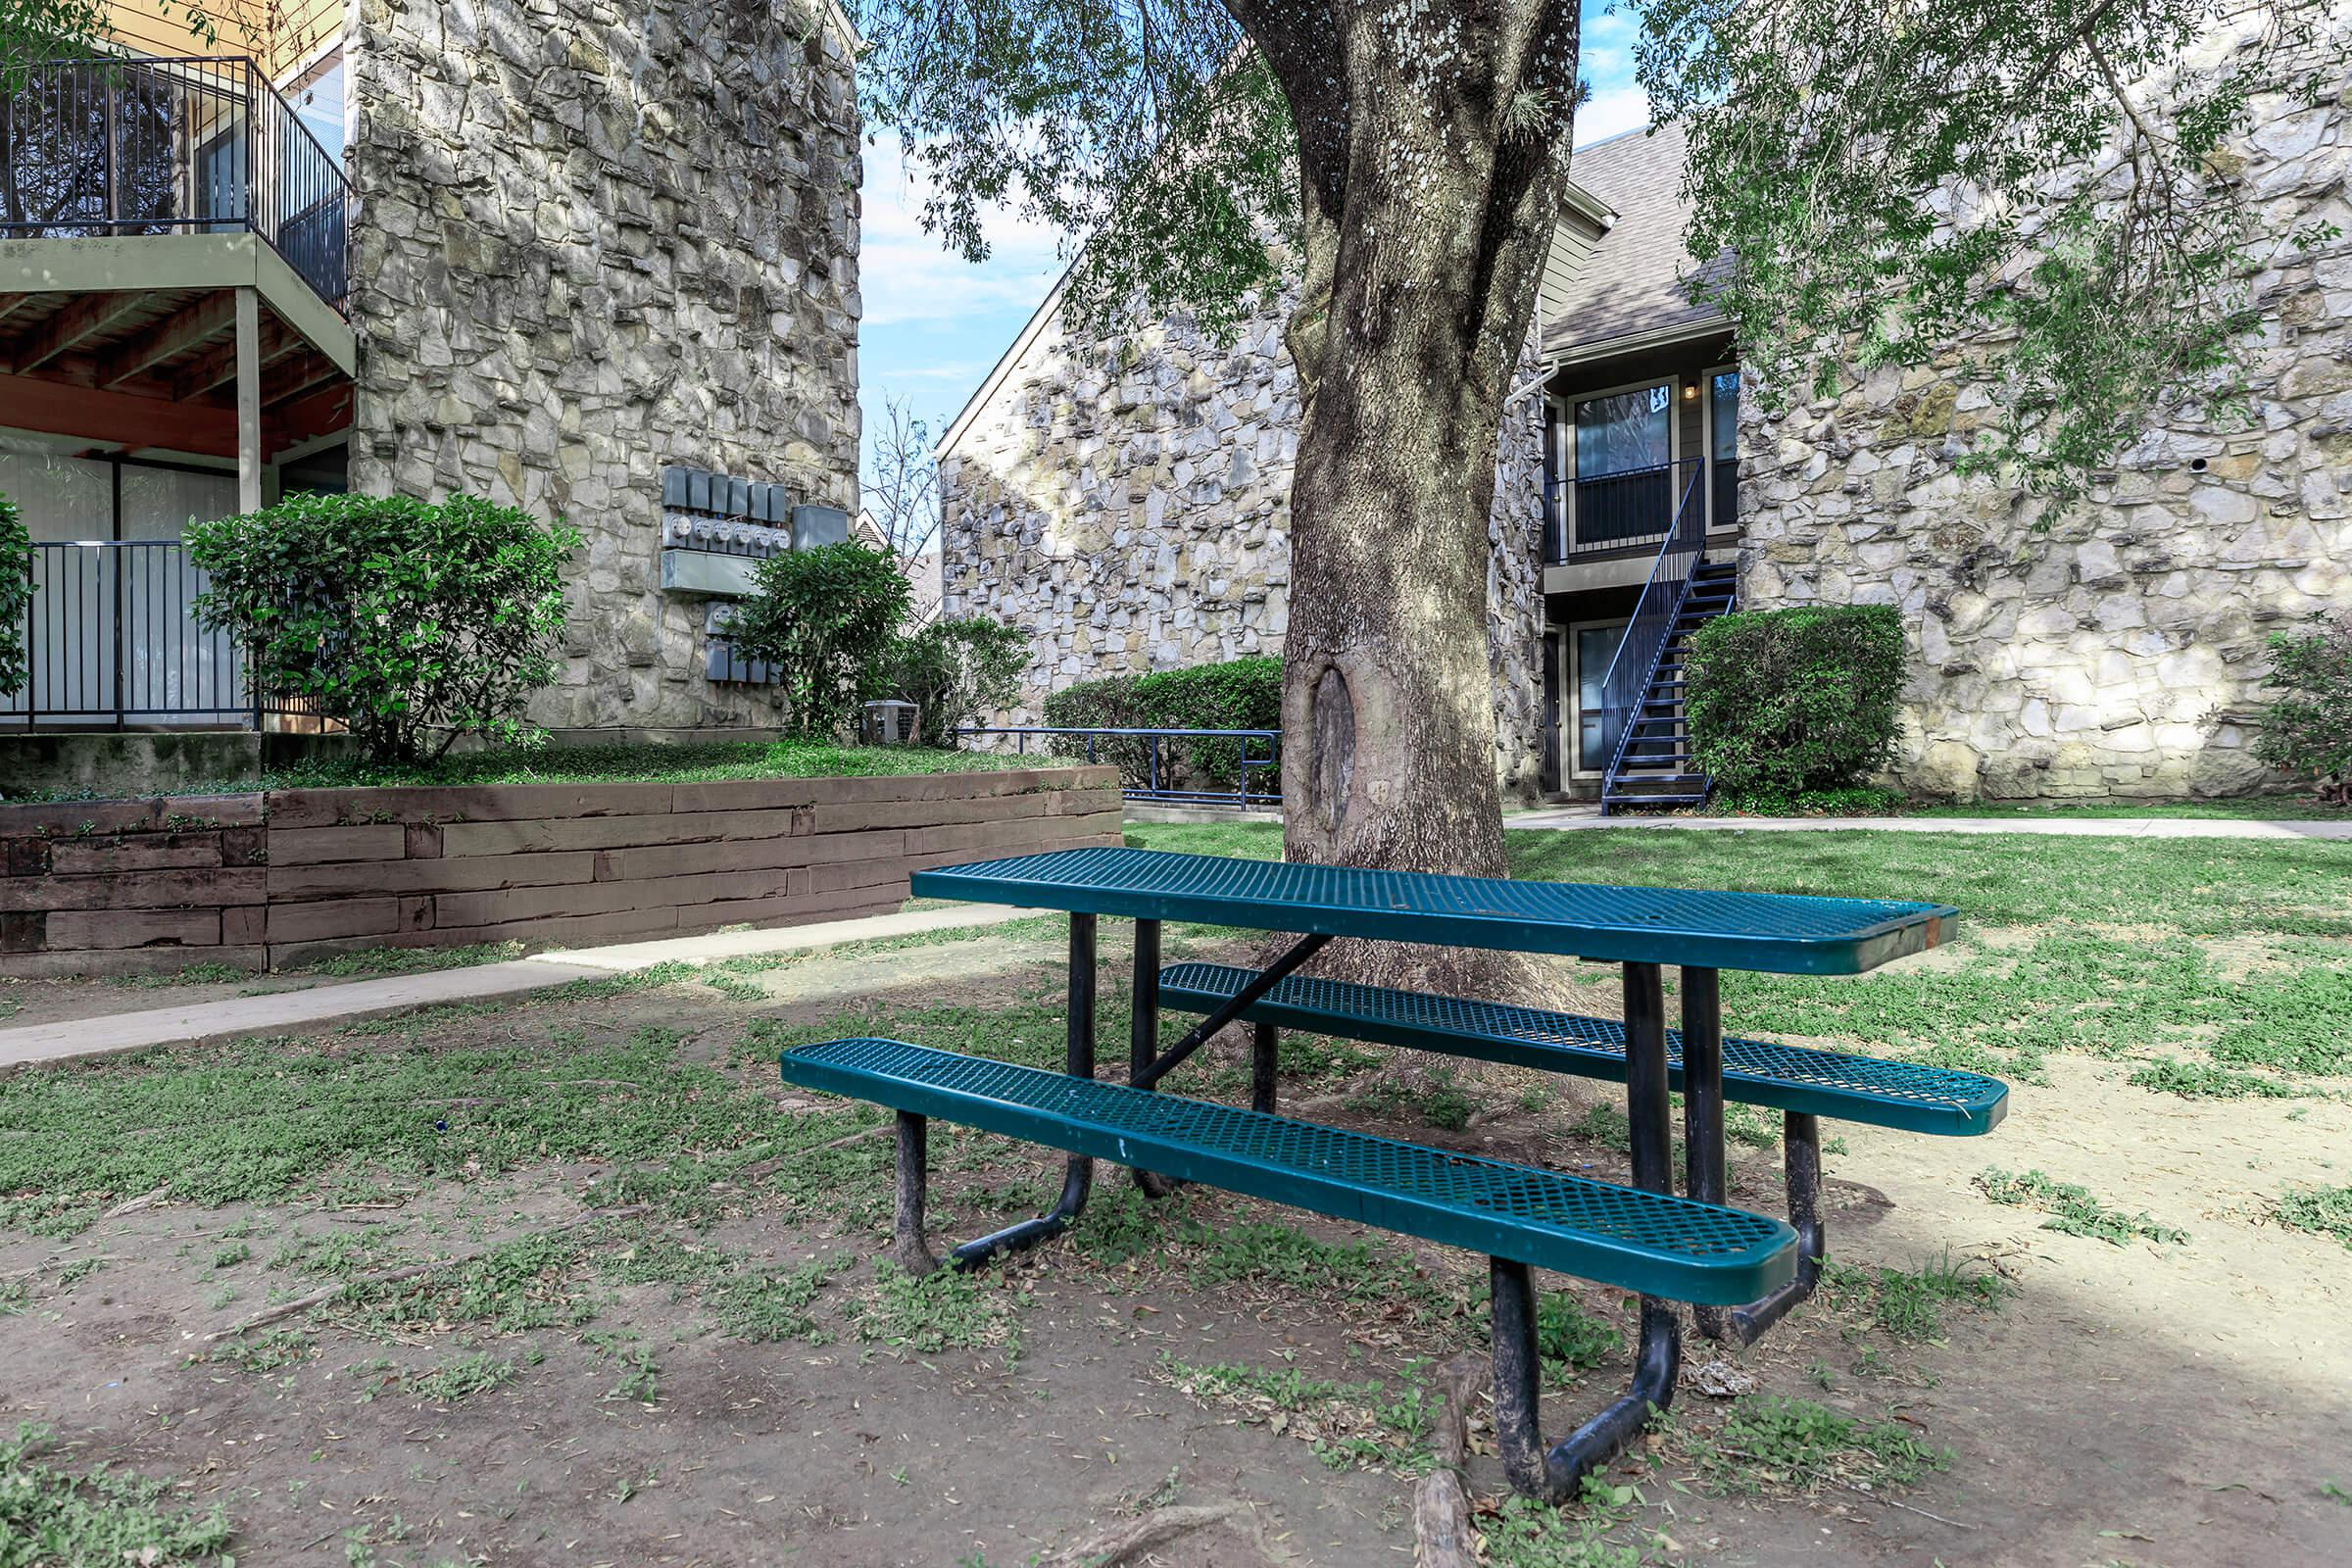 an empty park bench sitting in front of a house